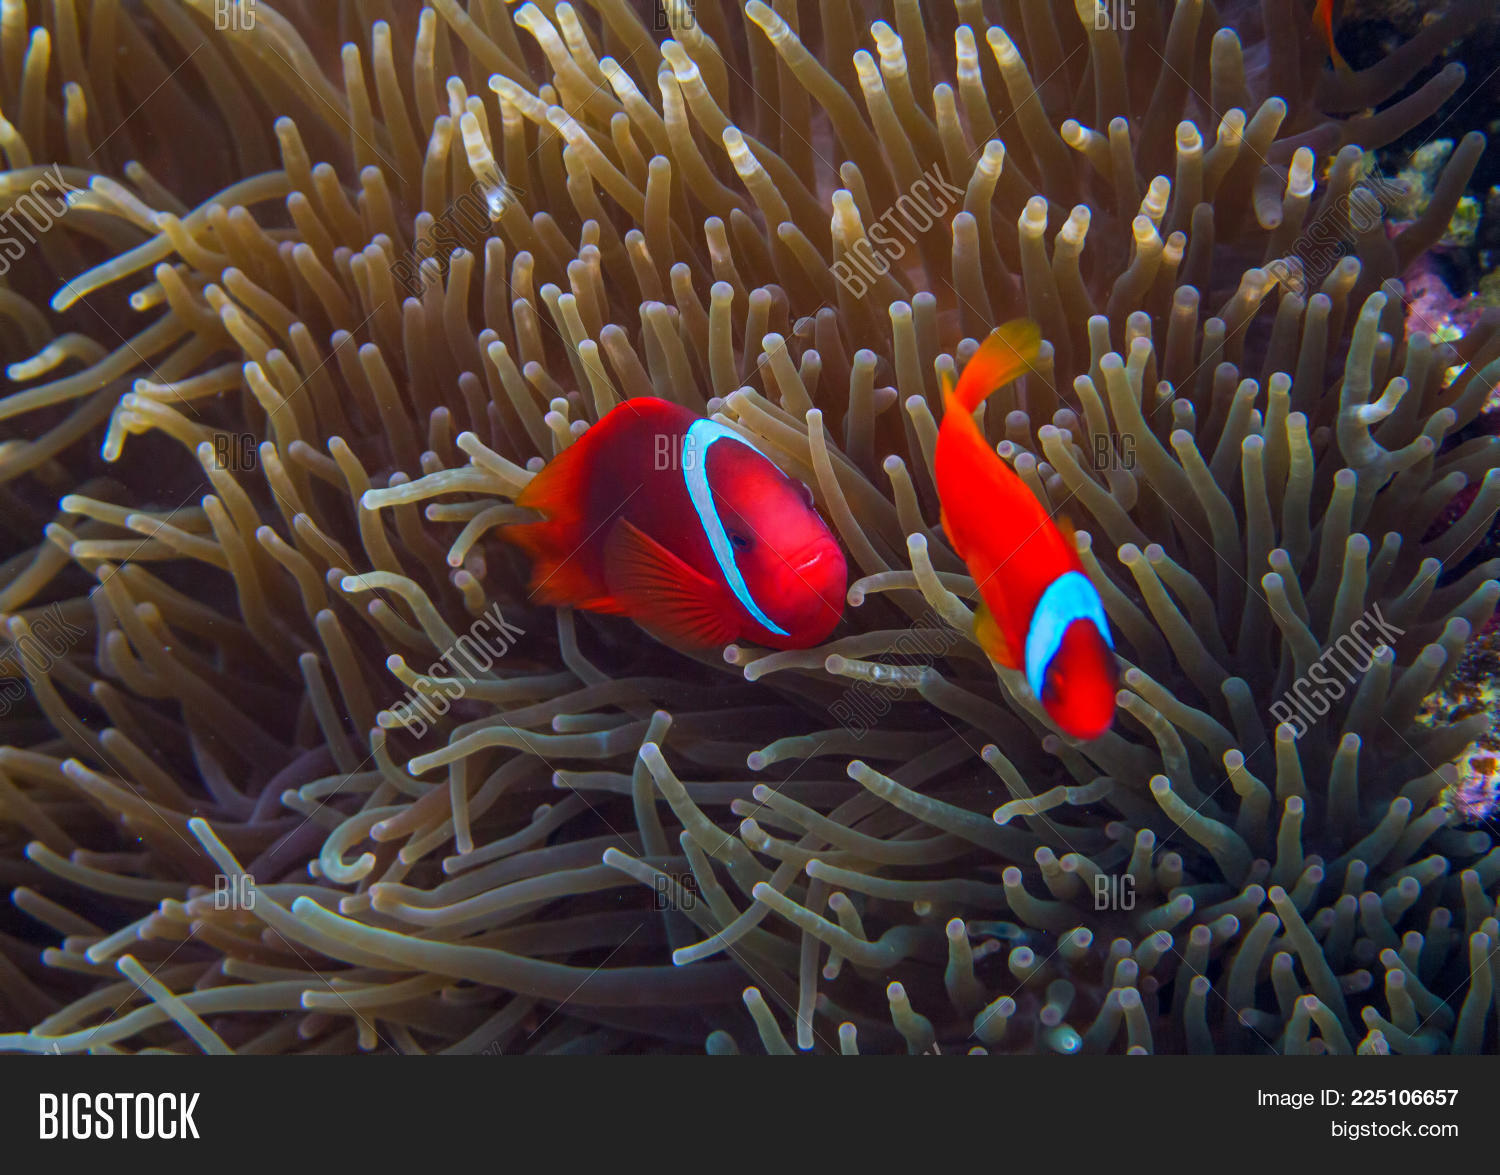 Clown Fish Actinia. Image & Photo (Free Trial) | Bigstock